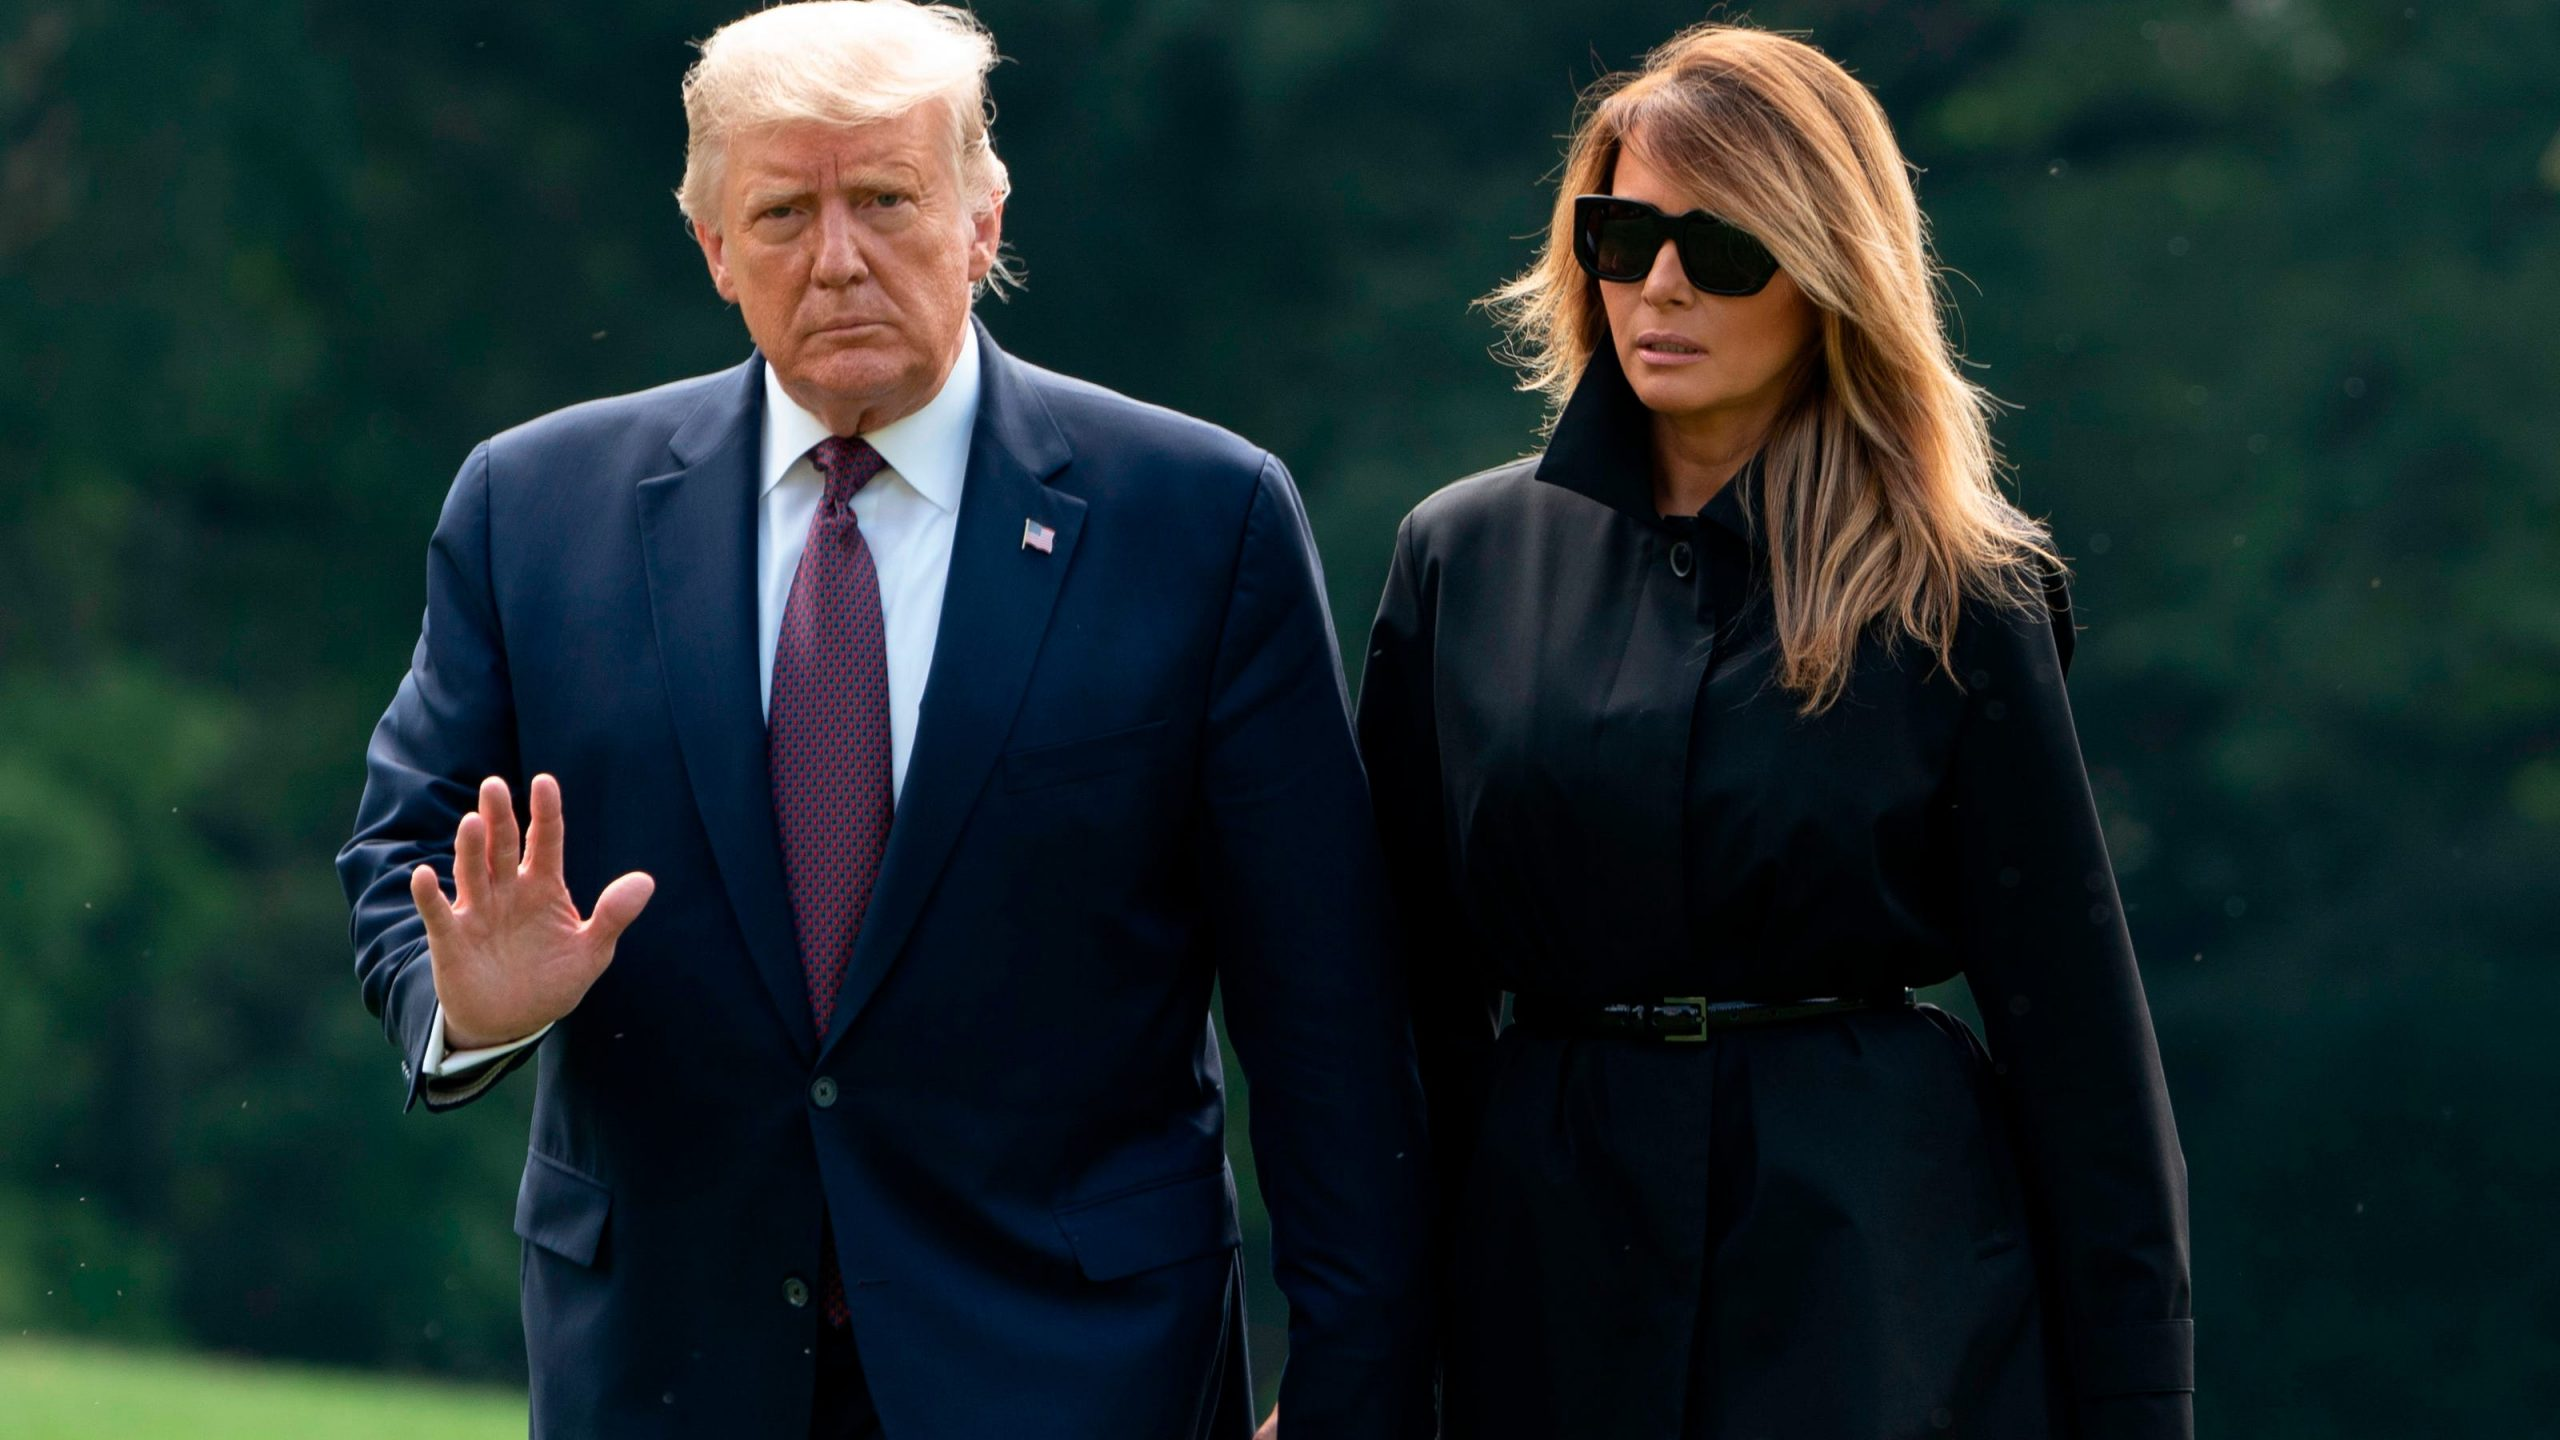 American President And First Lady, Donald And Melania Trump Have COVID-19.